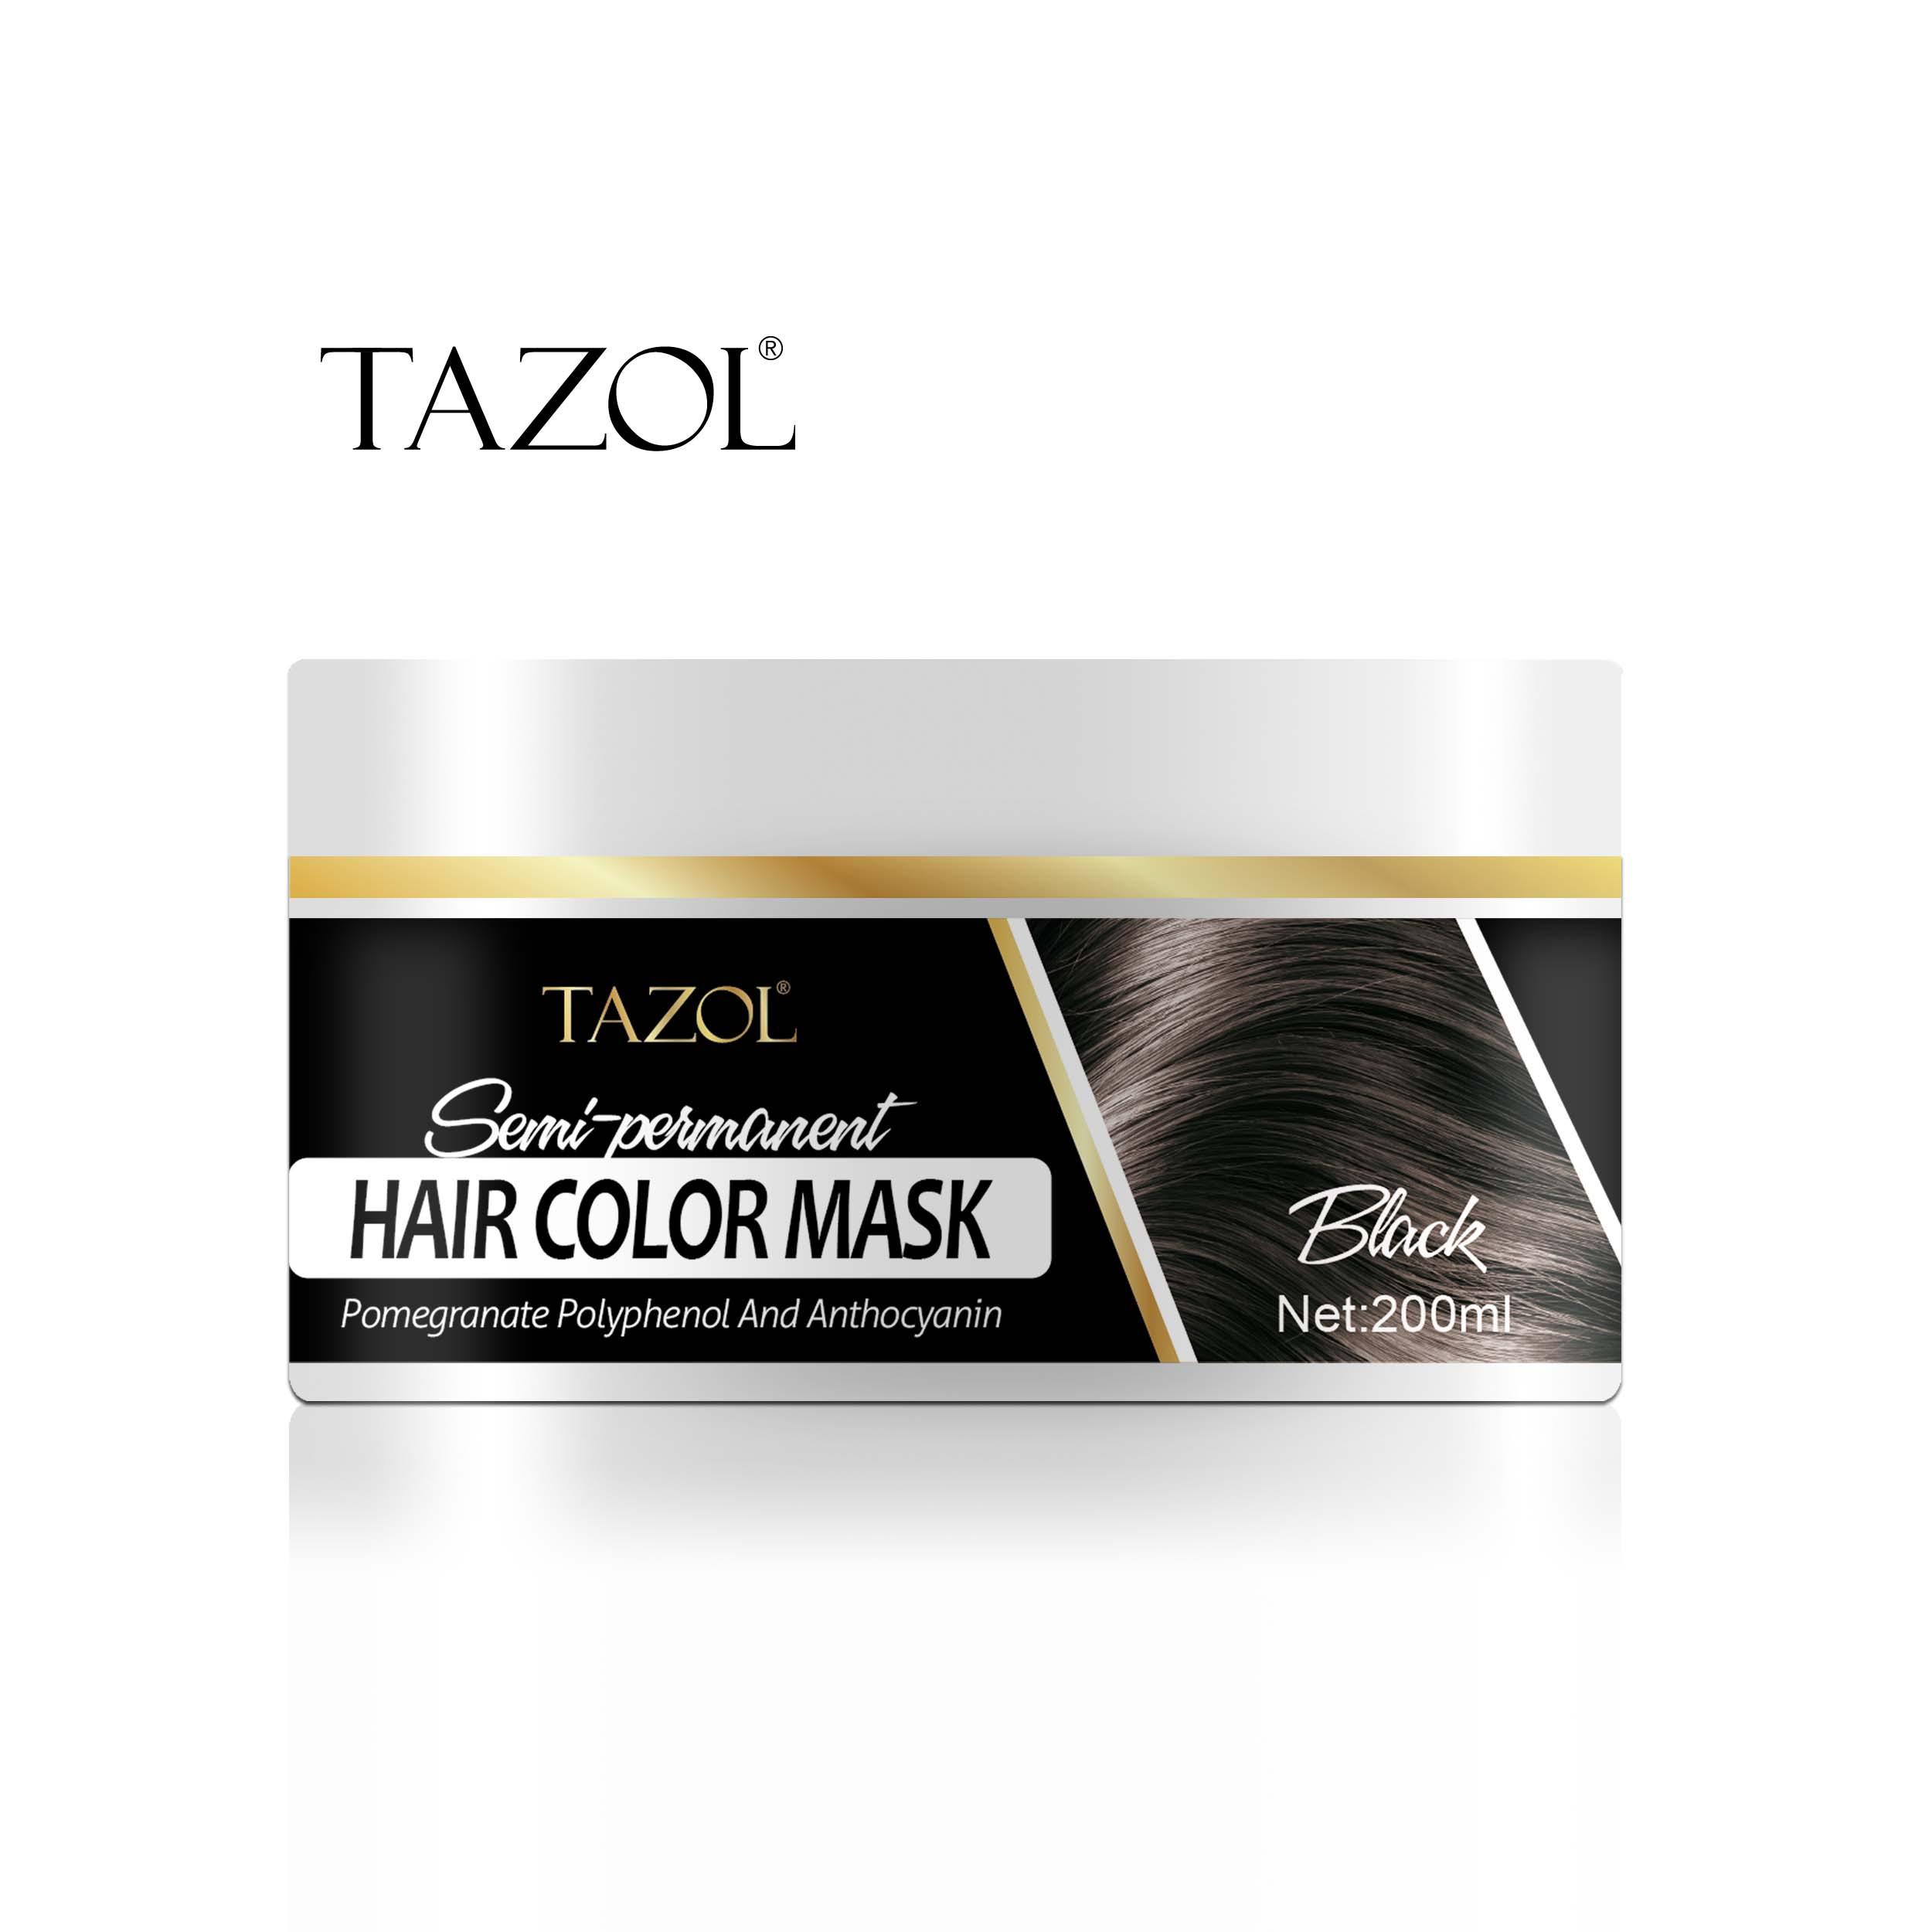 Tazol Semi-Permanant Hair Color Mask 200g with Black Color